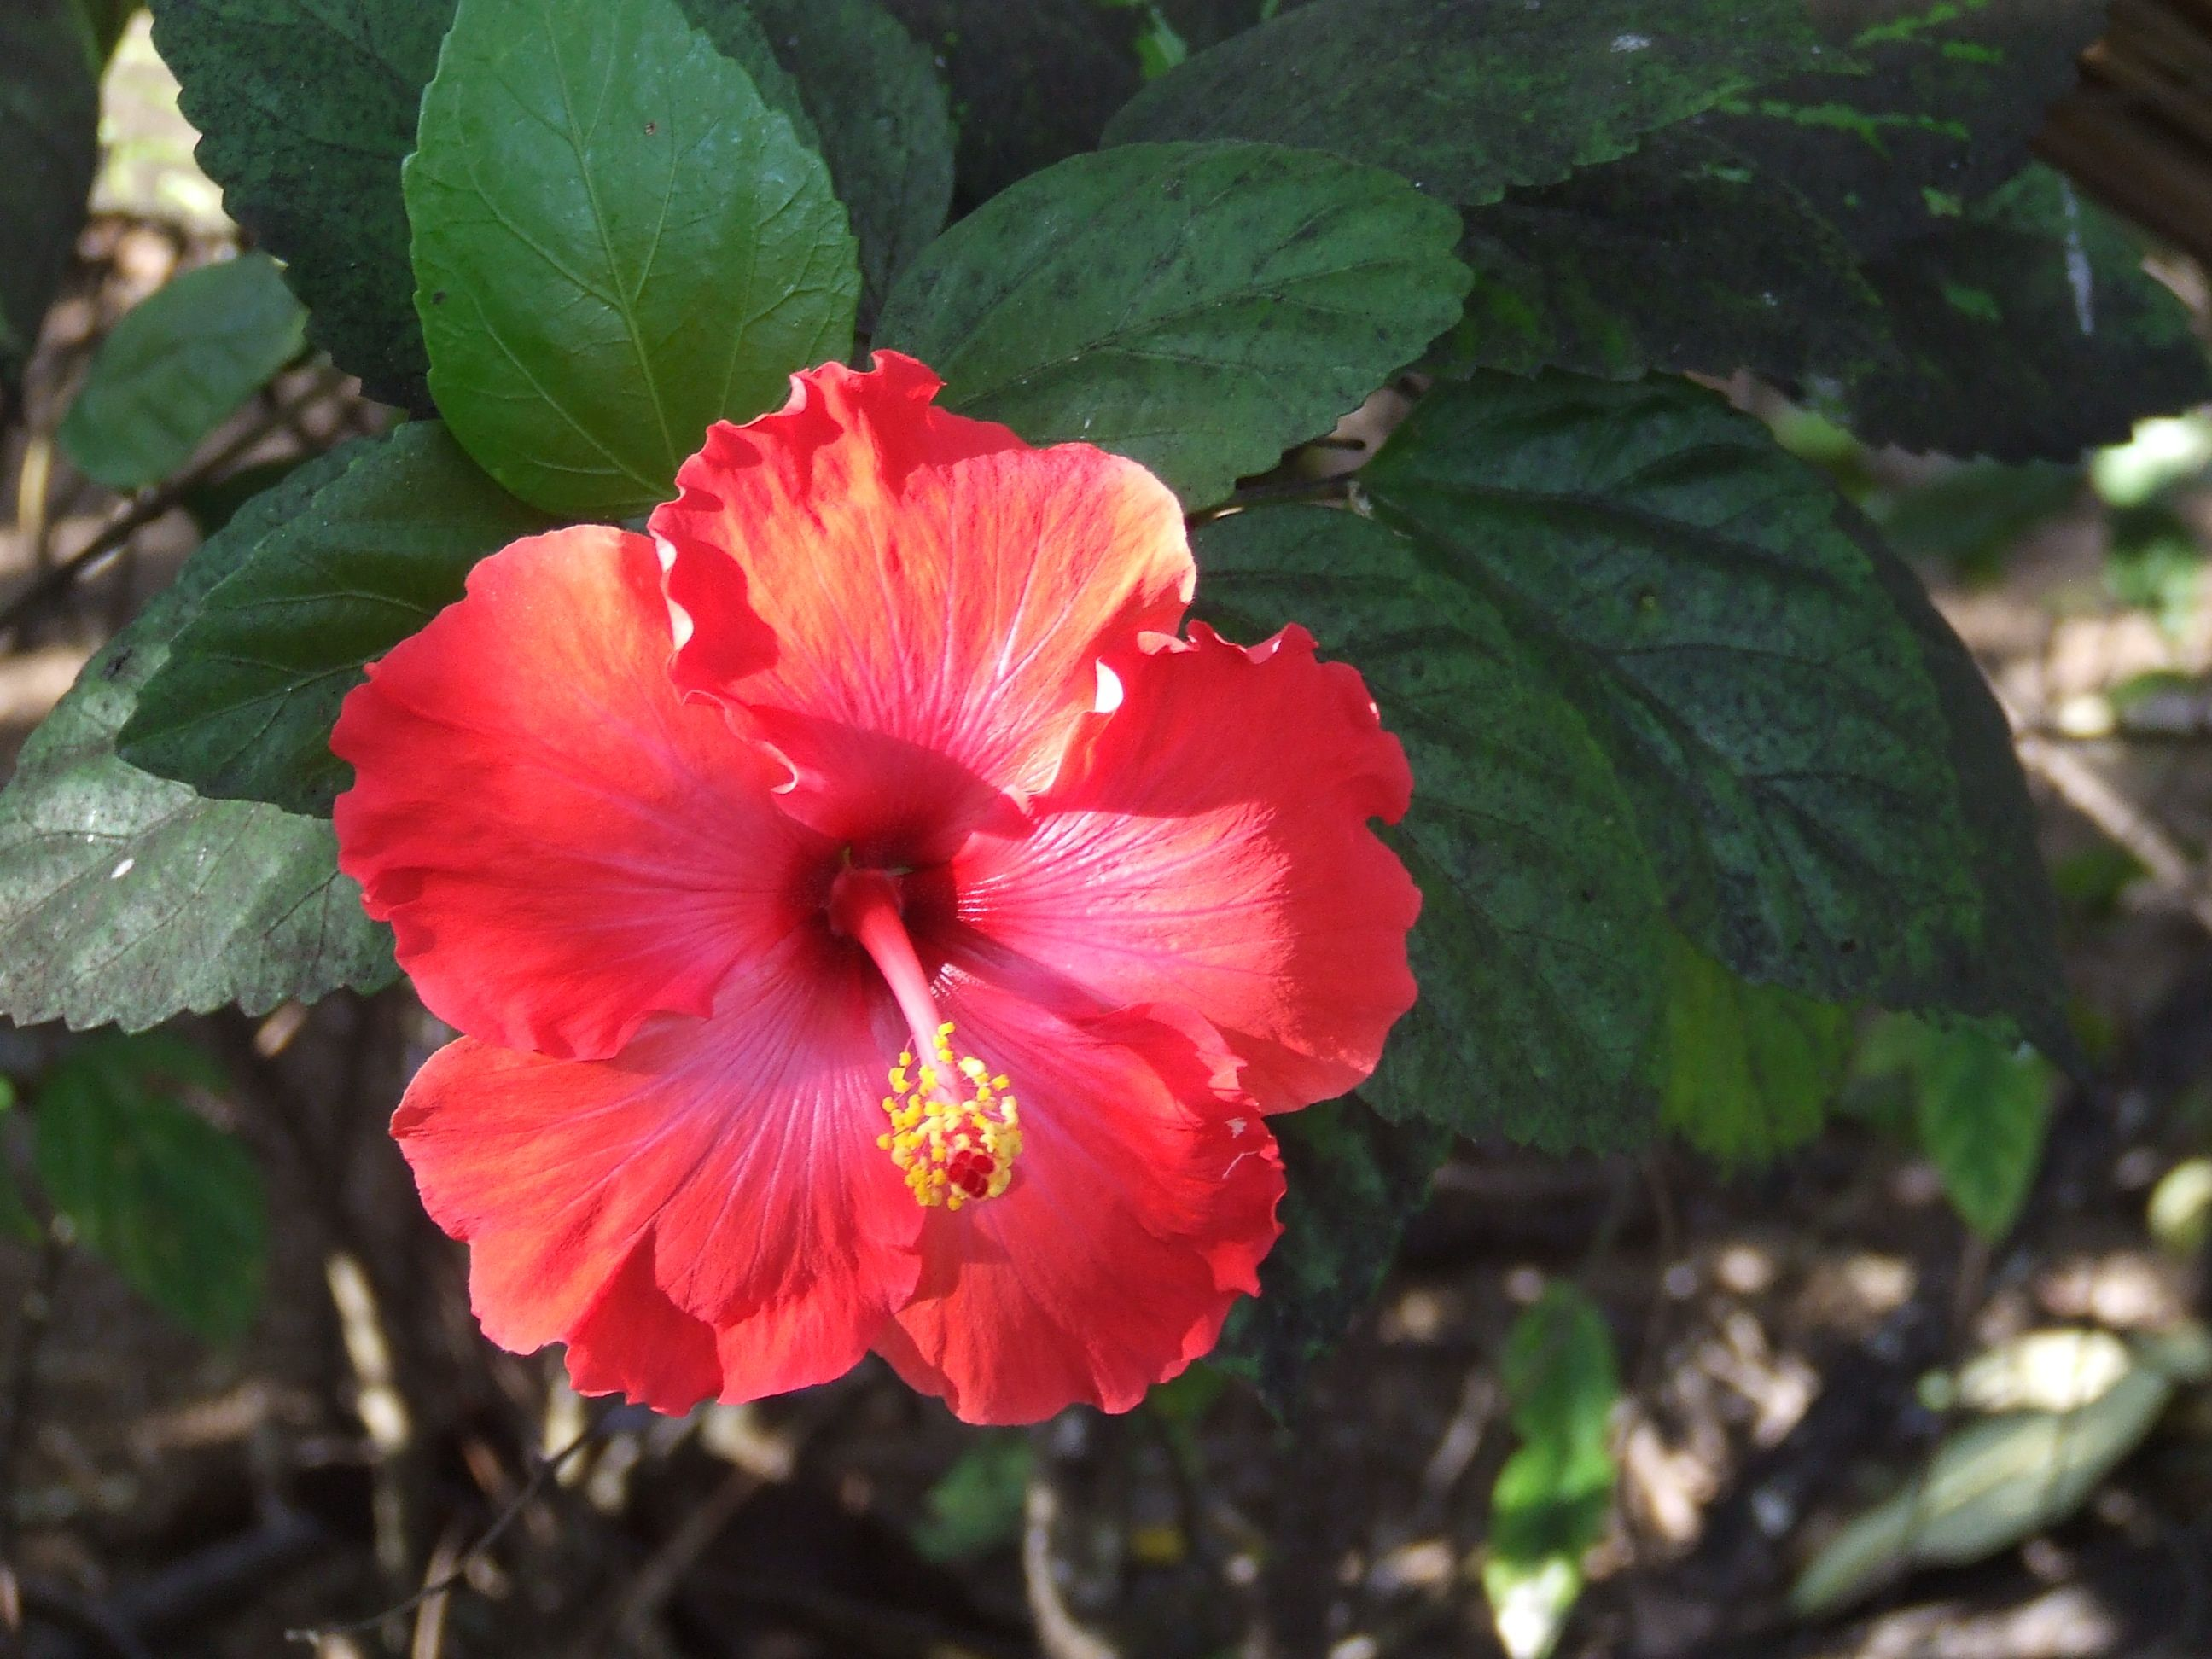 Hibiscus I wear one in my hair every day when I am in the islands. How do YOU transition into Island Life? Put on flip flops? Live in a bathing suit & shorts? Order a tropical cocktail? #travel #Tahiti #hibiscus #IslandLife